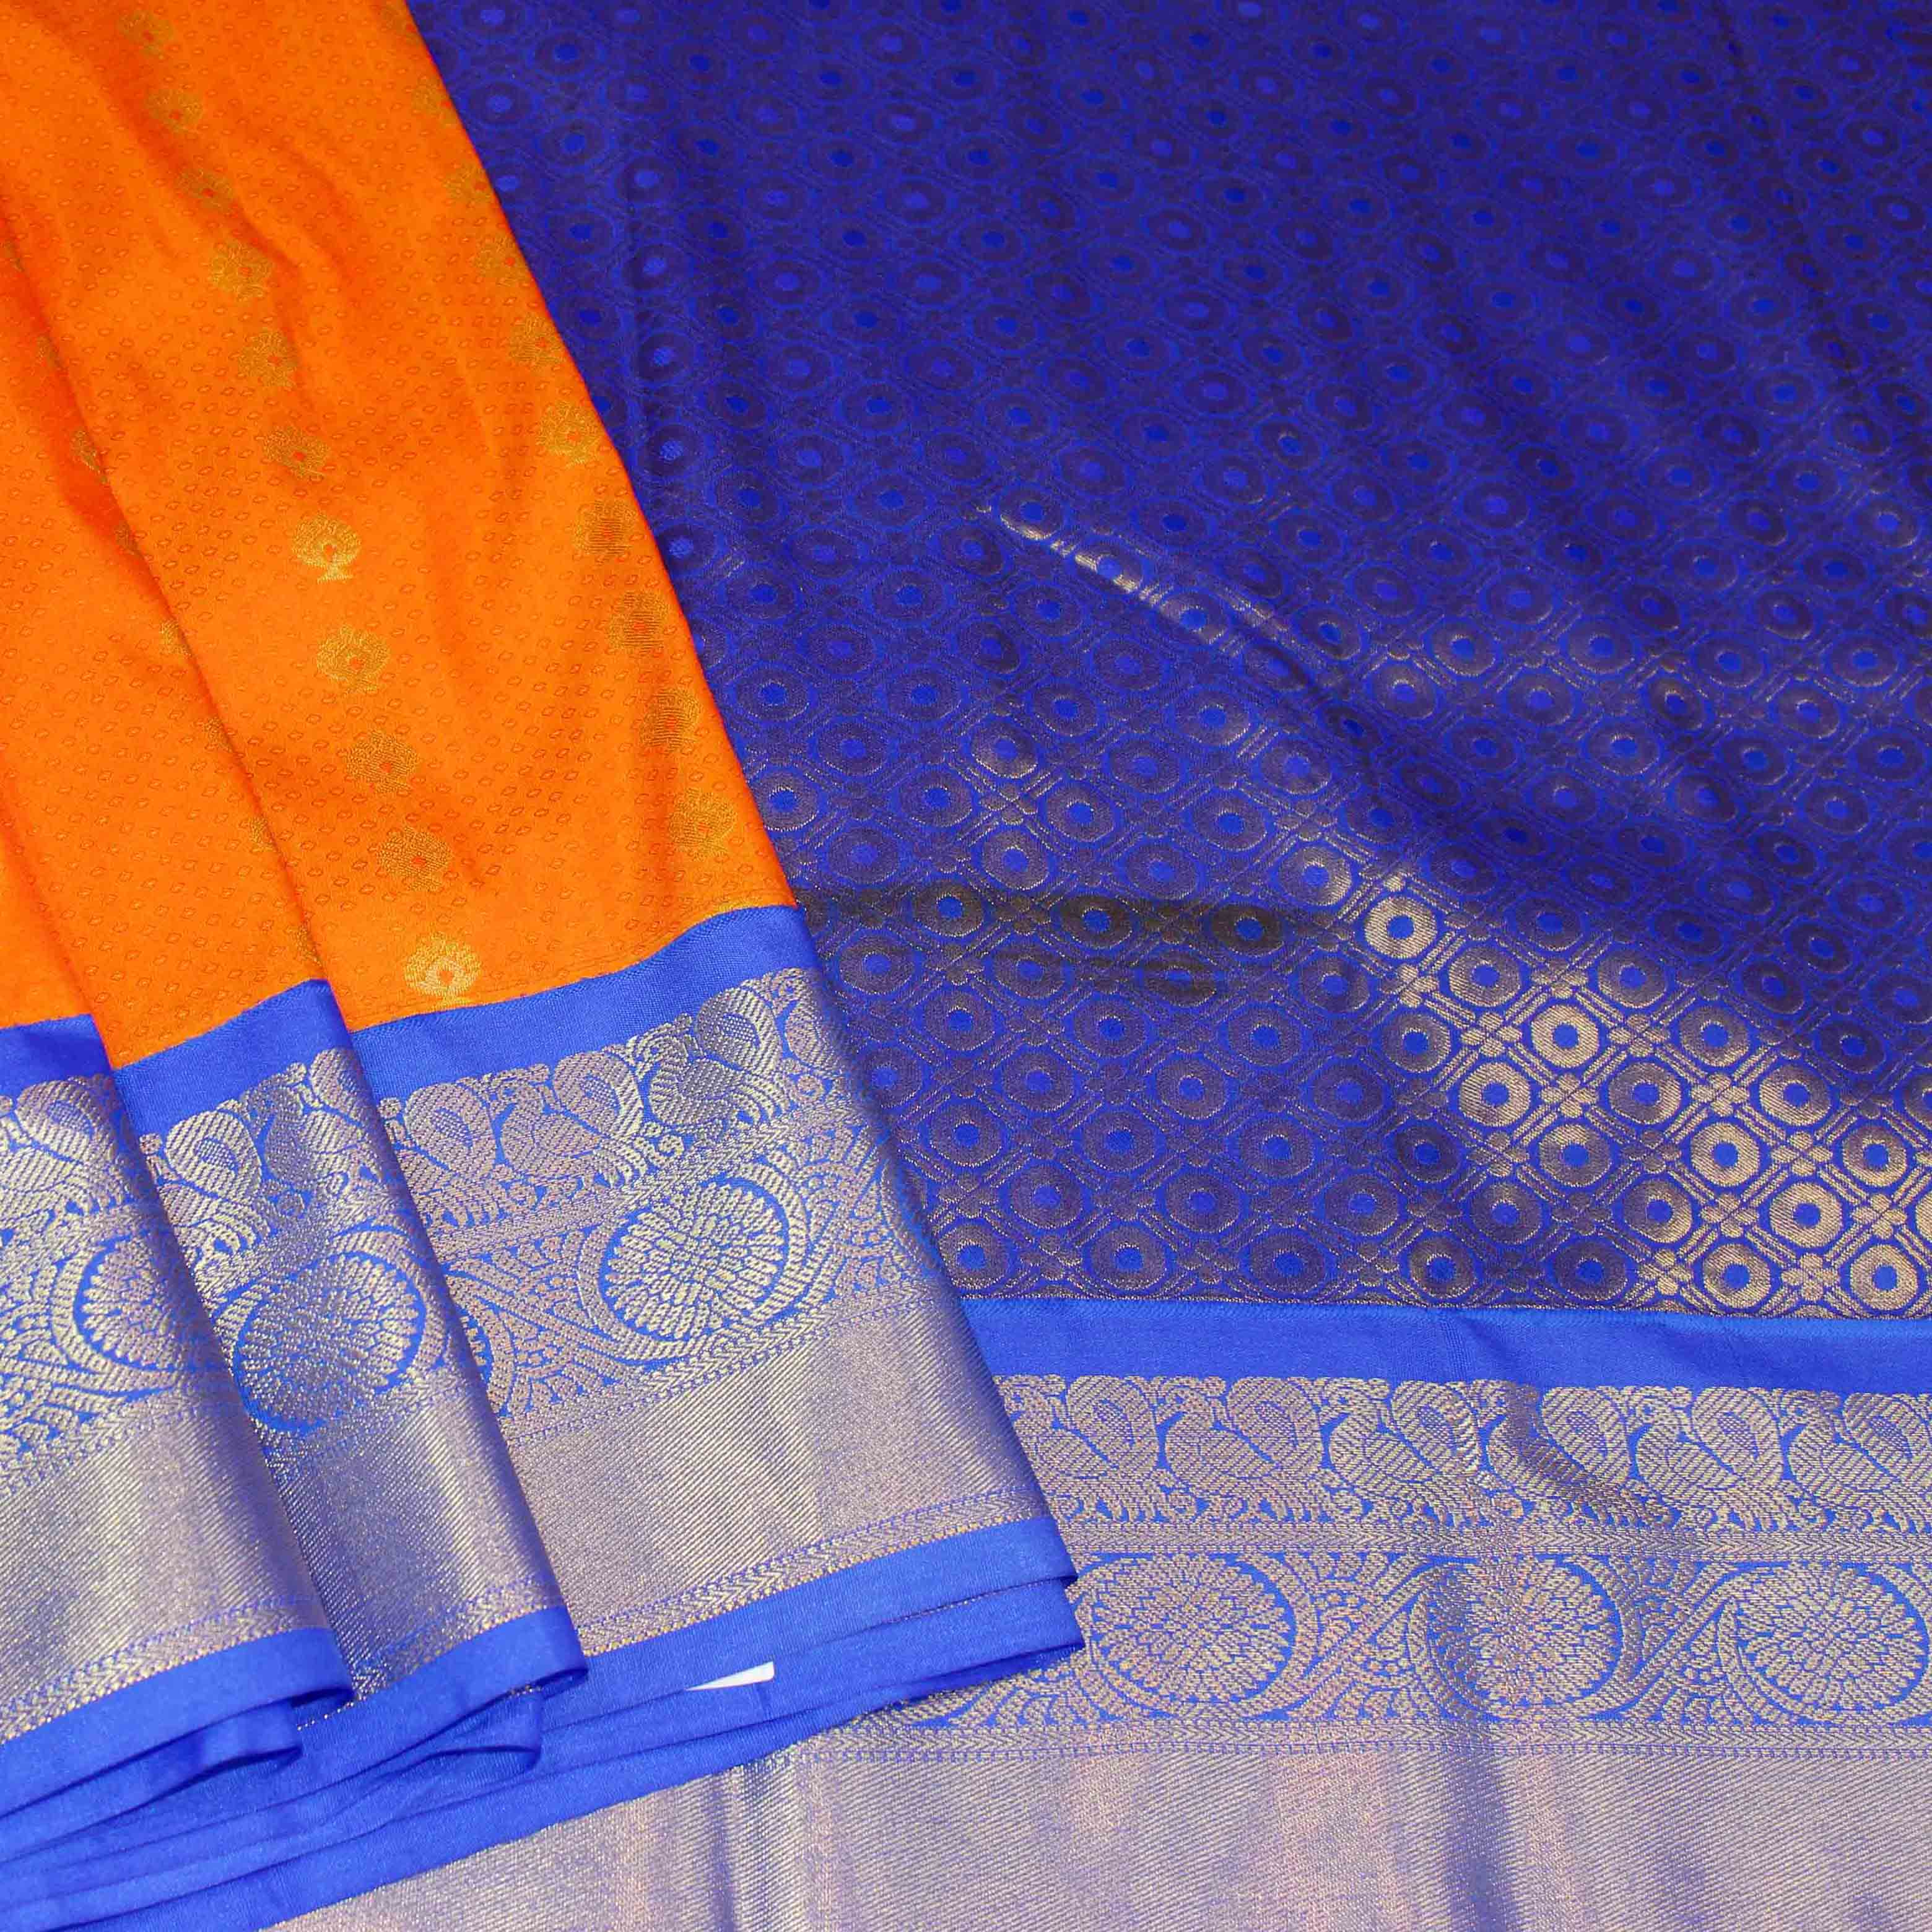 Mixture of orange and blue silk with silver jari